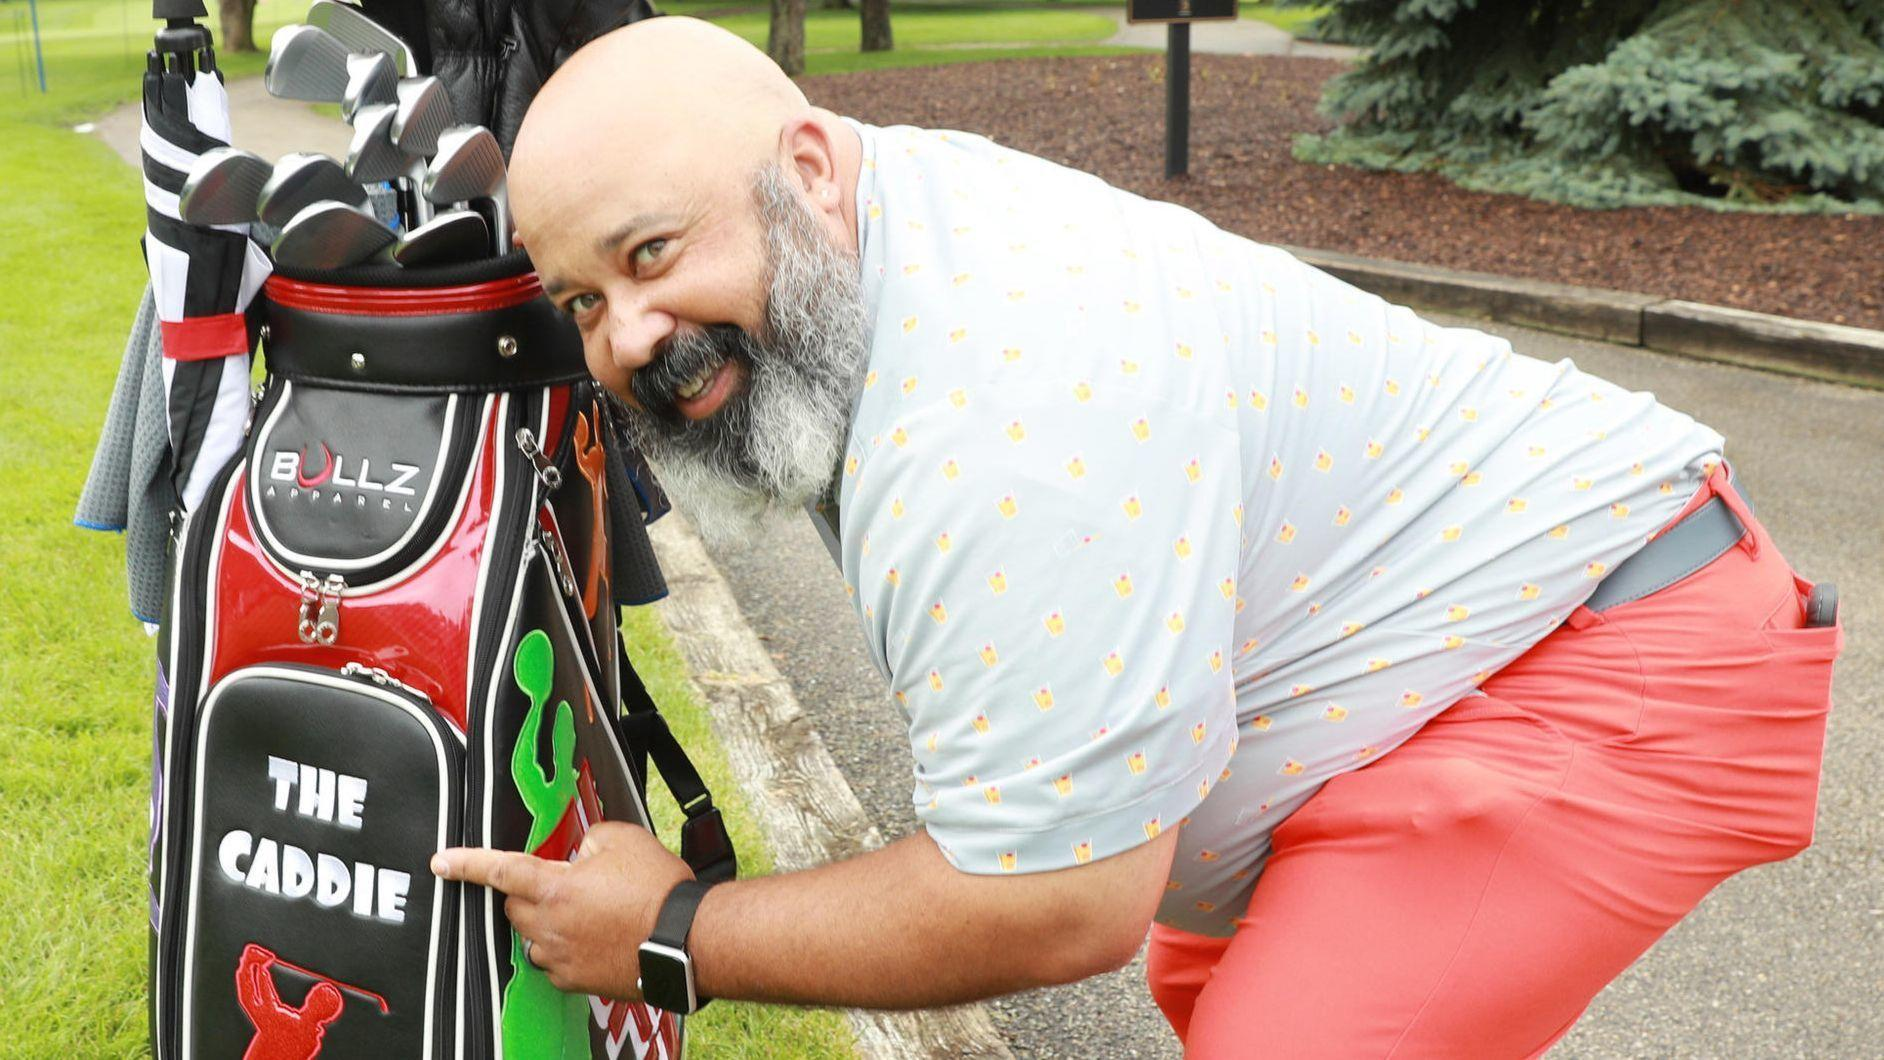 So this comedian walks onto a golf course: The unlikely ...